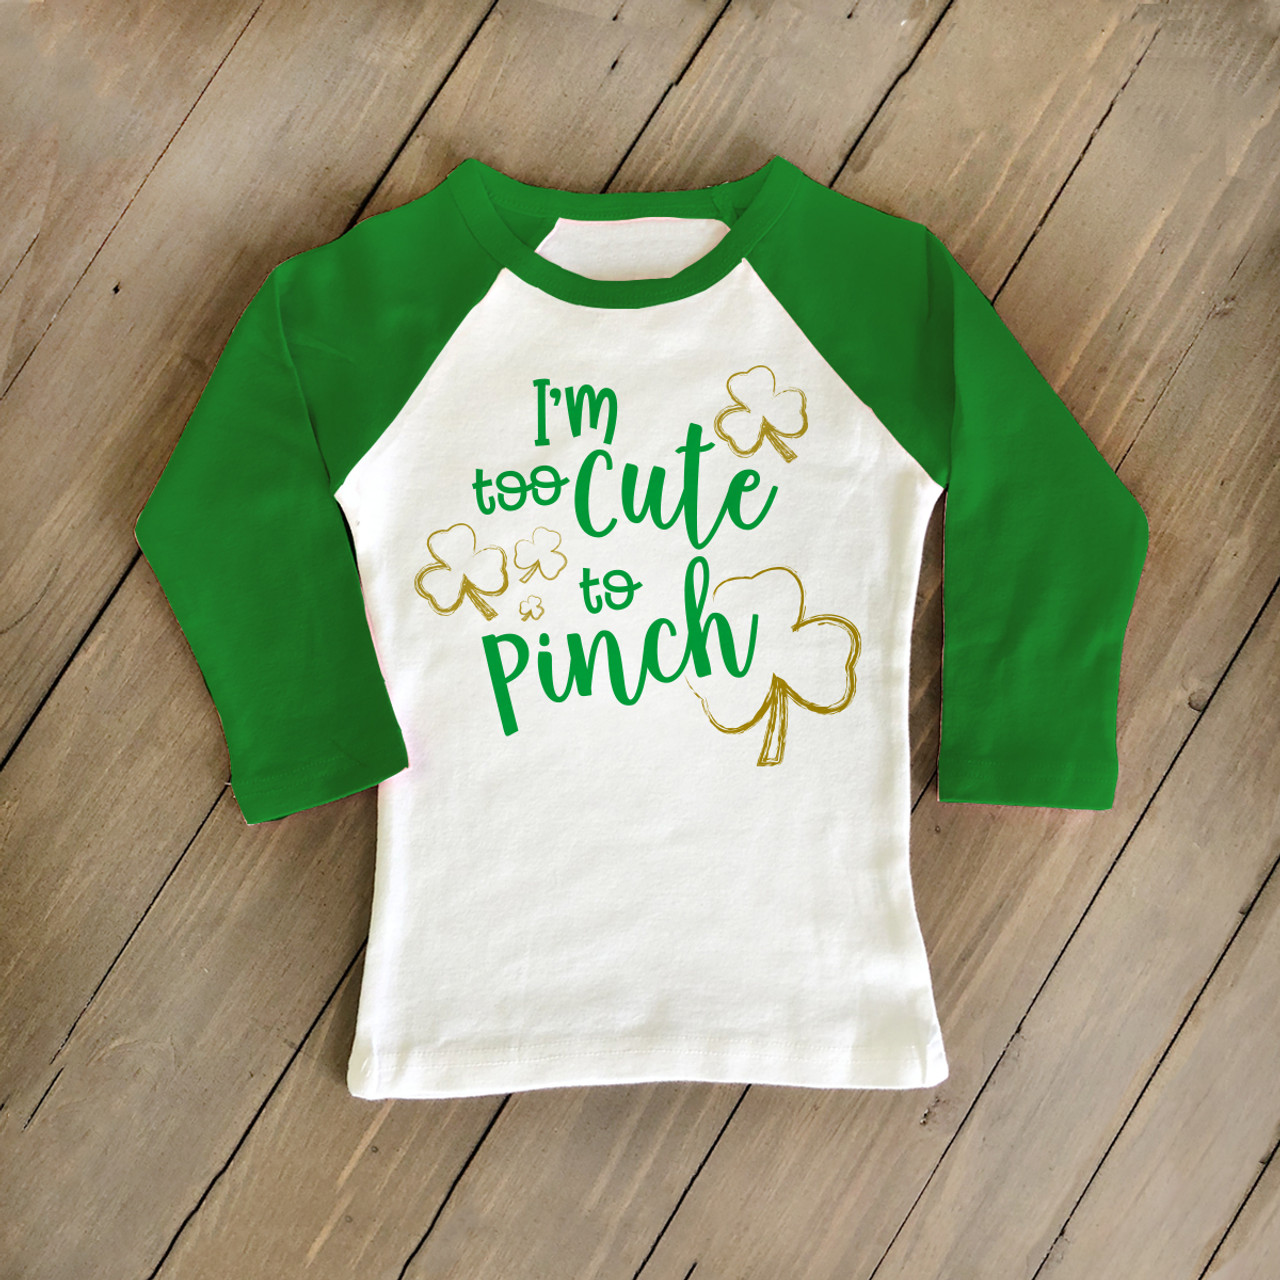 a064767b1 kids st patrick shirt, shamrock too cute to pinch raglan shirt